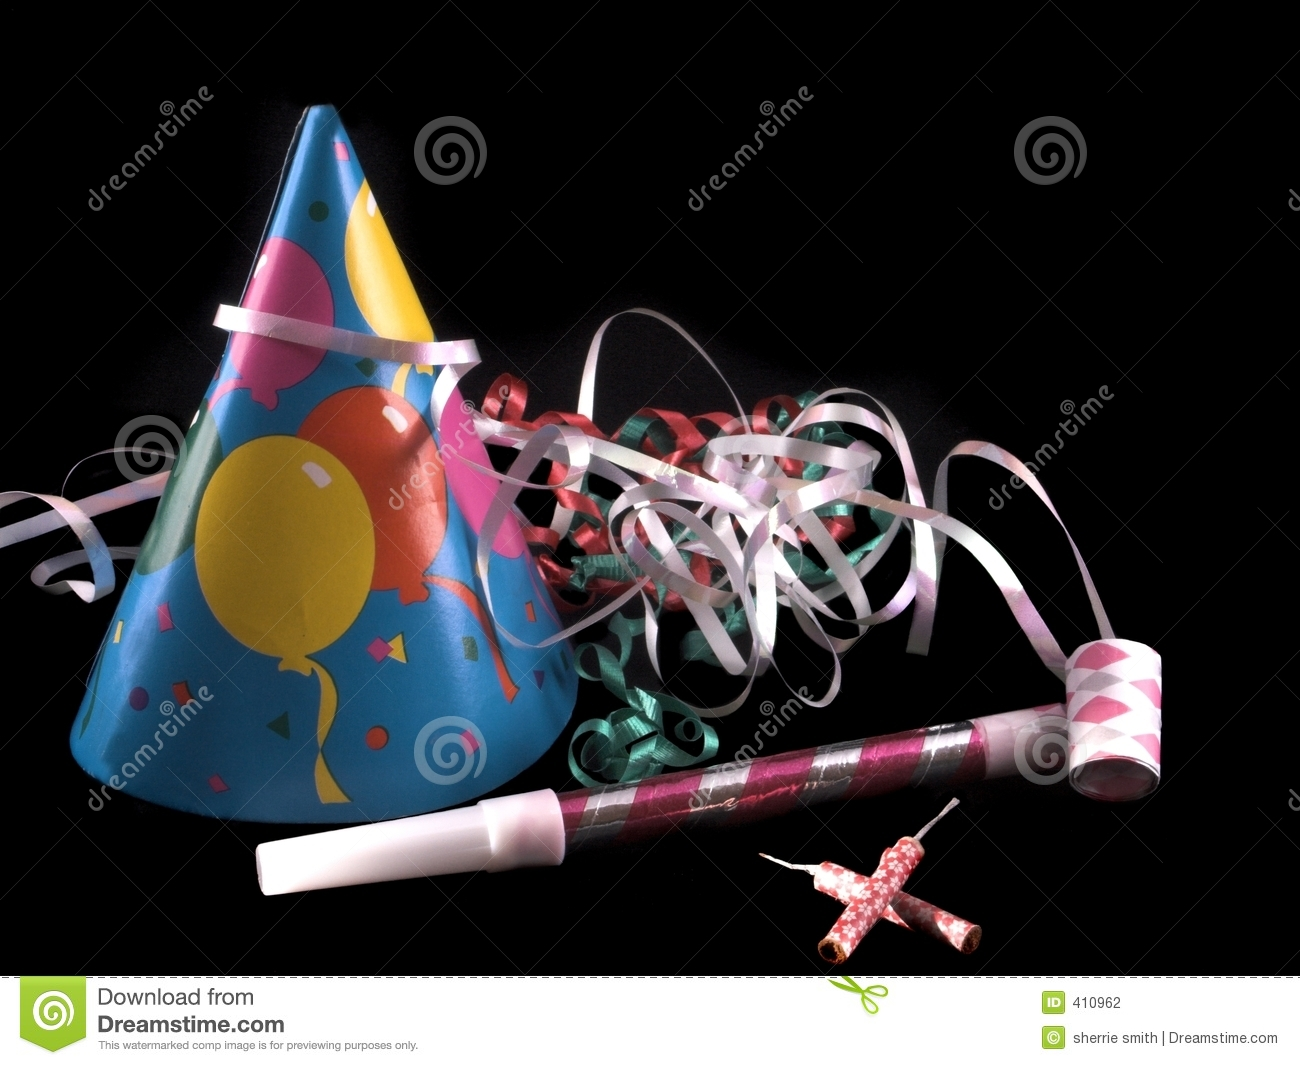 Party Stuff Stock Photography - Image: 410962